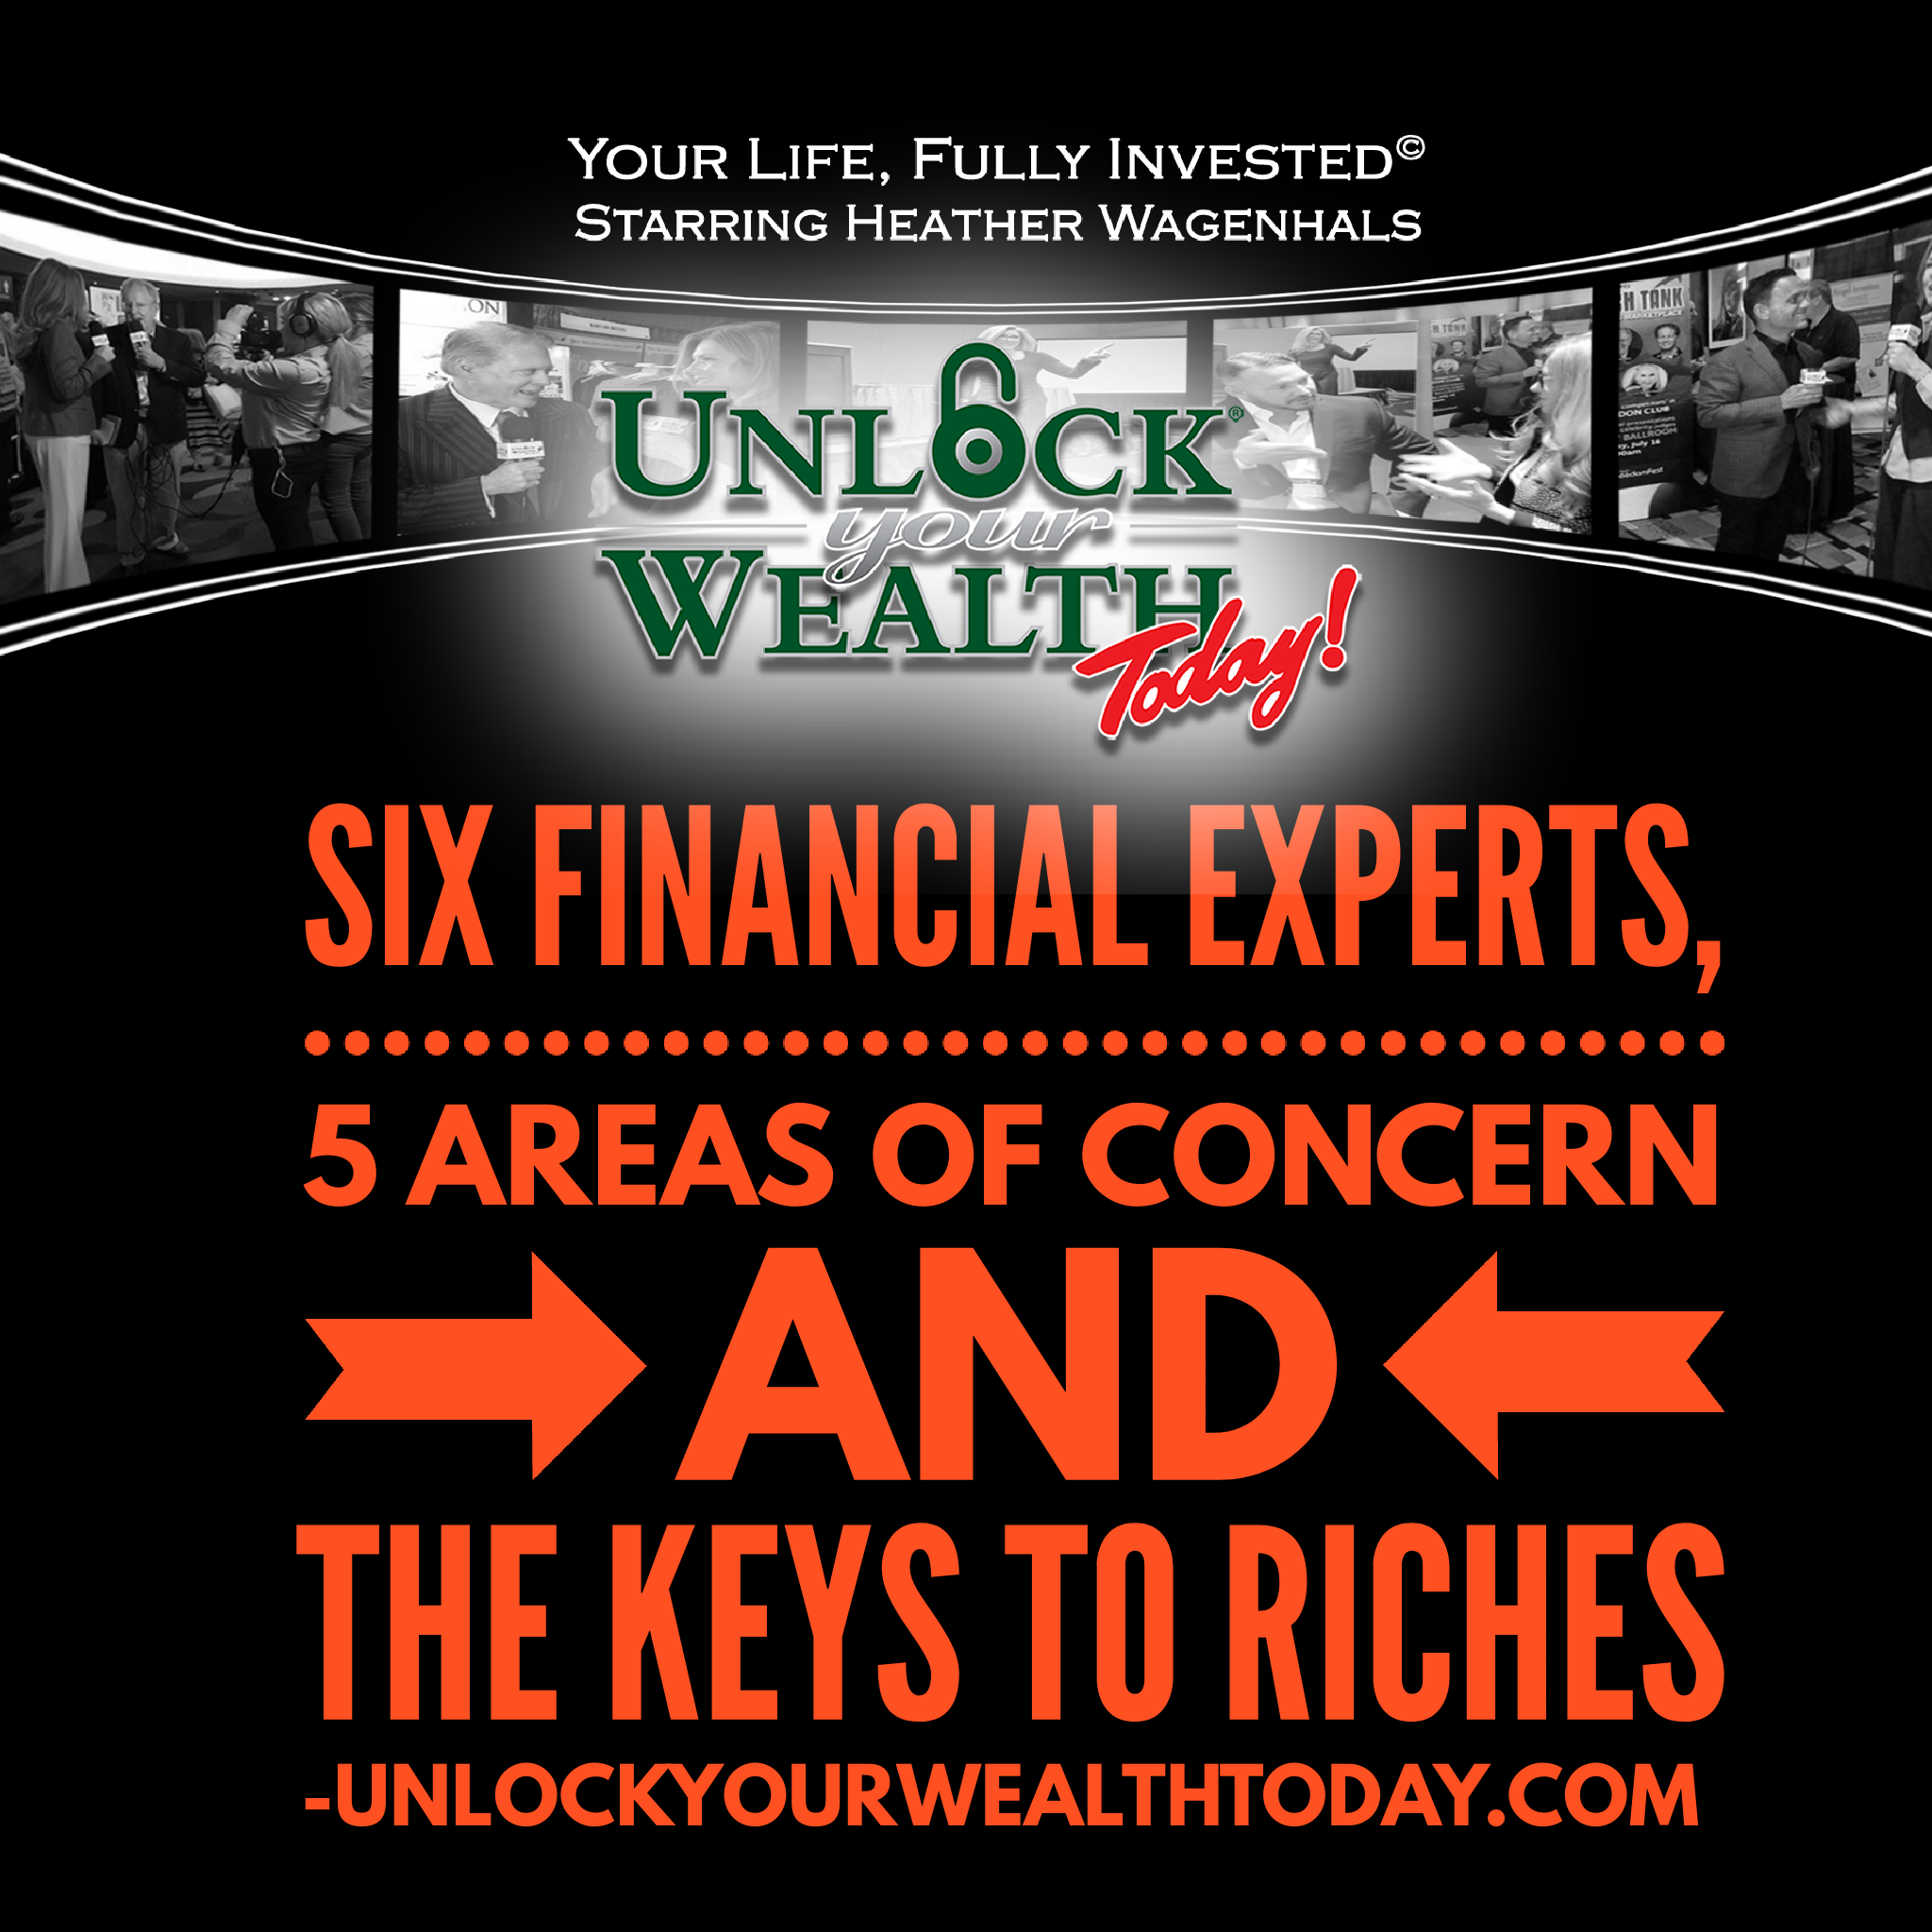 Artwork for Six Financial Experts, Five Areas of Concern and the Keys to Riches© Financial Philosophy